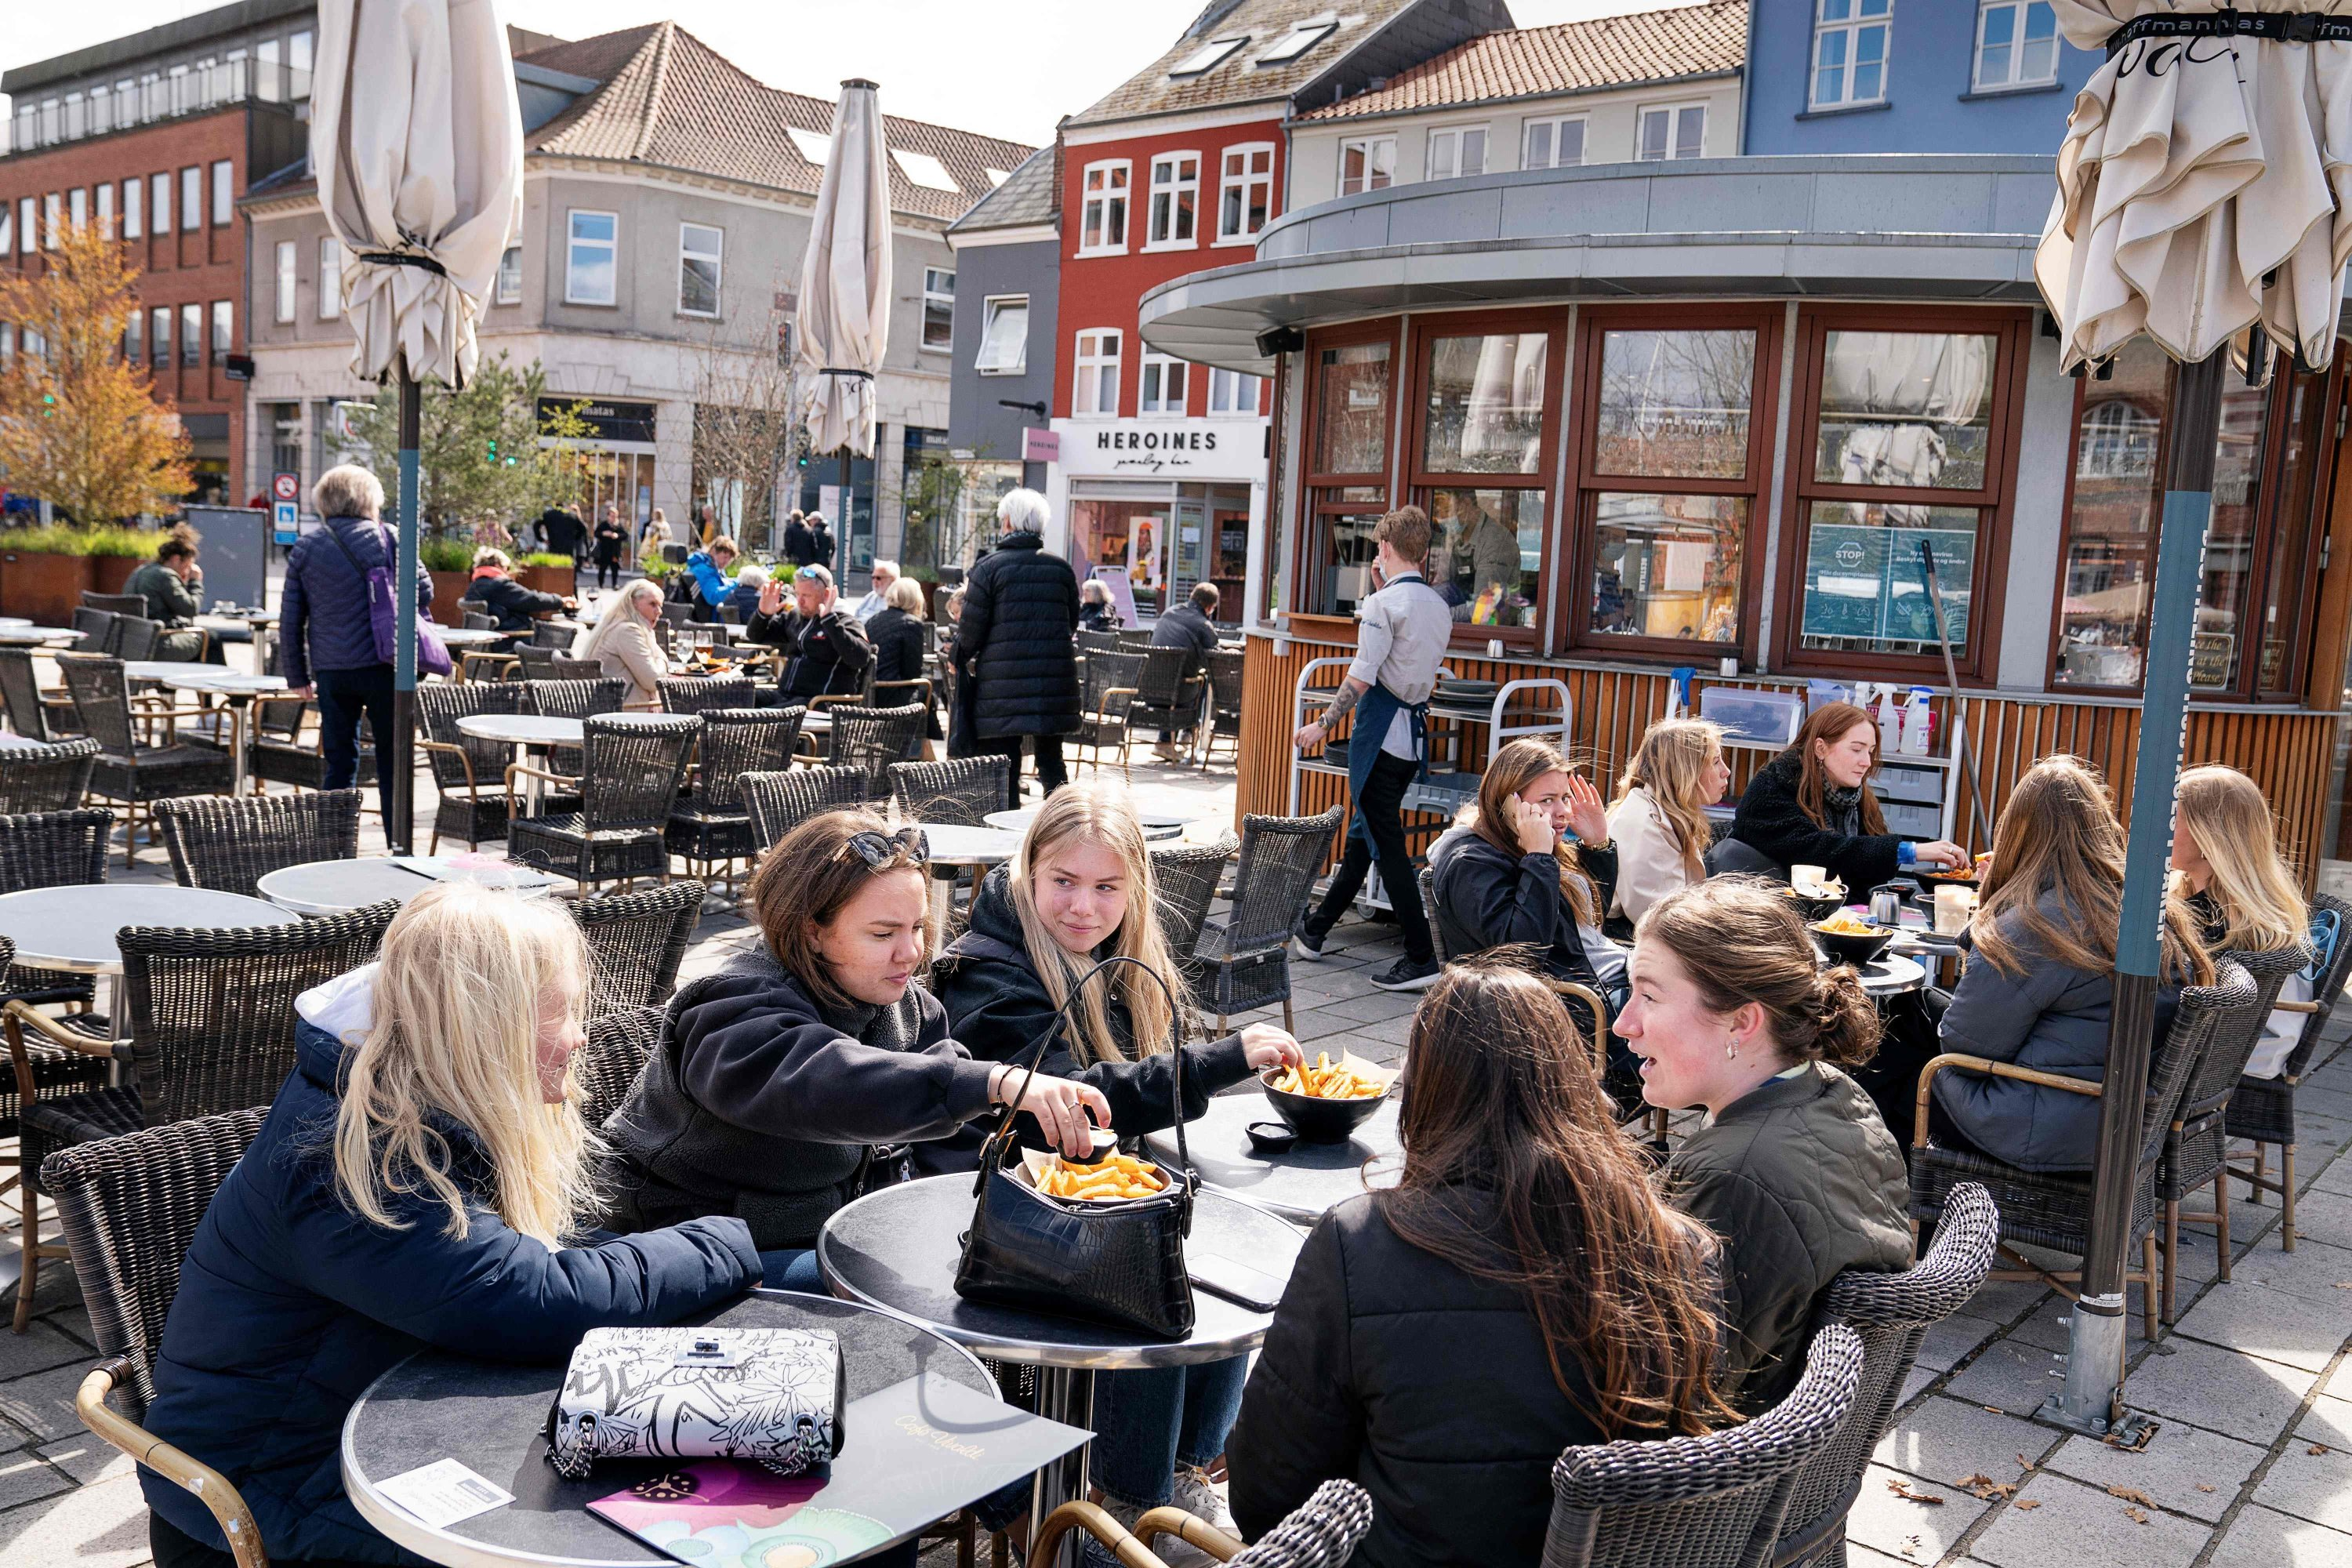 As cafes and bars reopen amid the coronavirus pandemic, people enjoy outdoor service in Roskilde, Denmark, April 21, 2021. (AFP Photo)